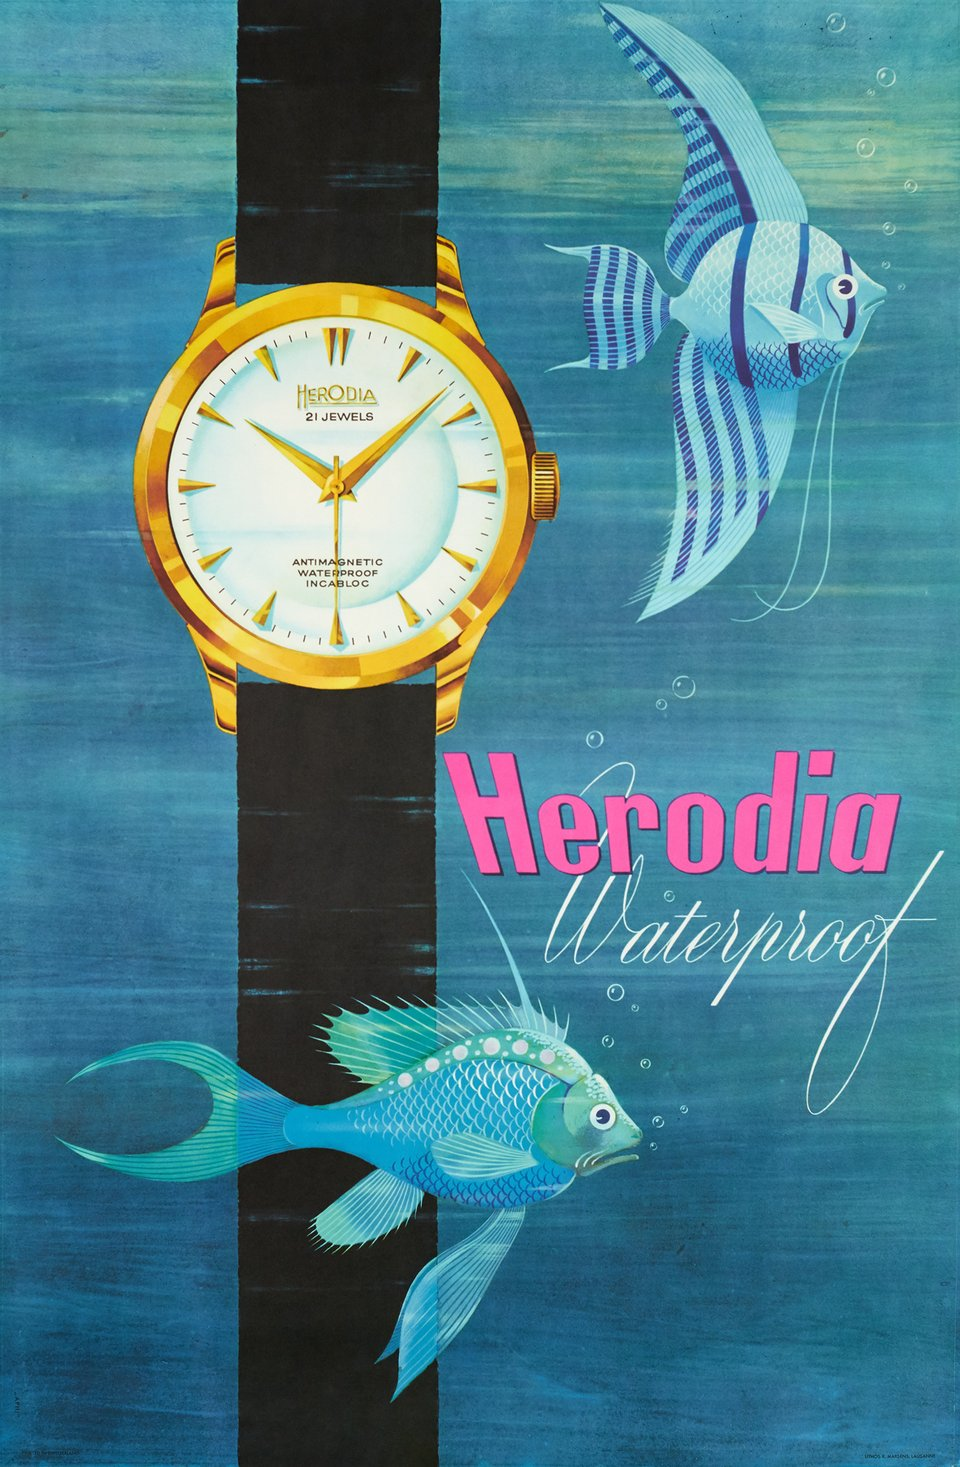 Herodia Waterproof – Affiche ancienne – ANONYMOUS – 1958